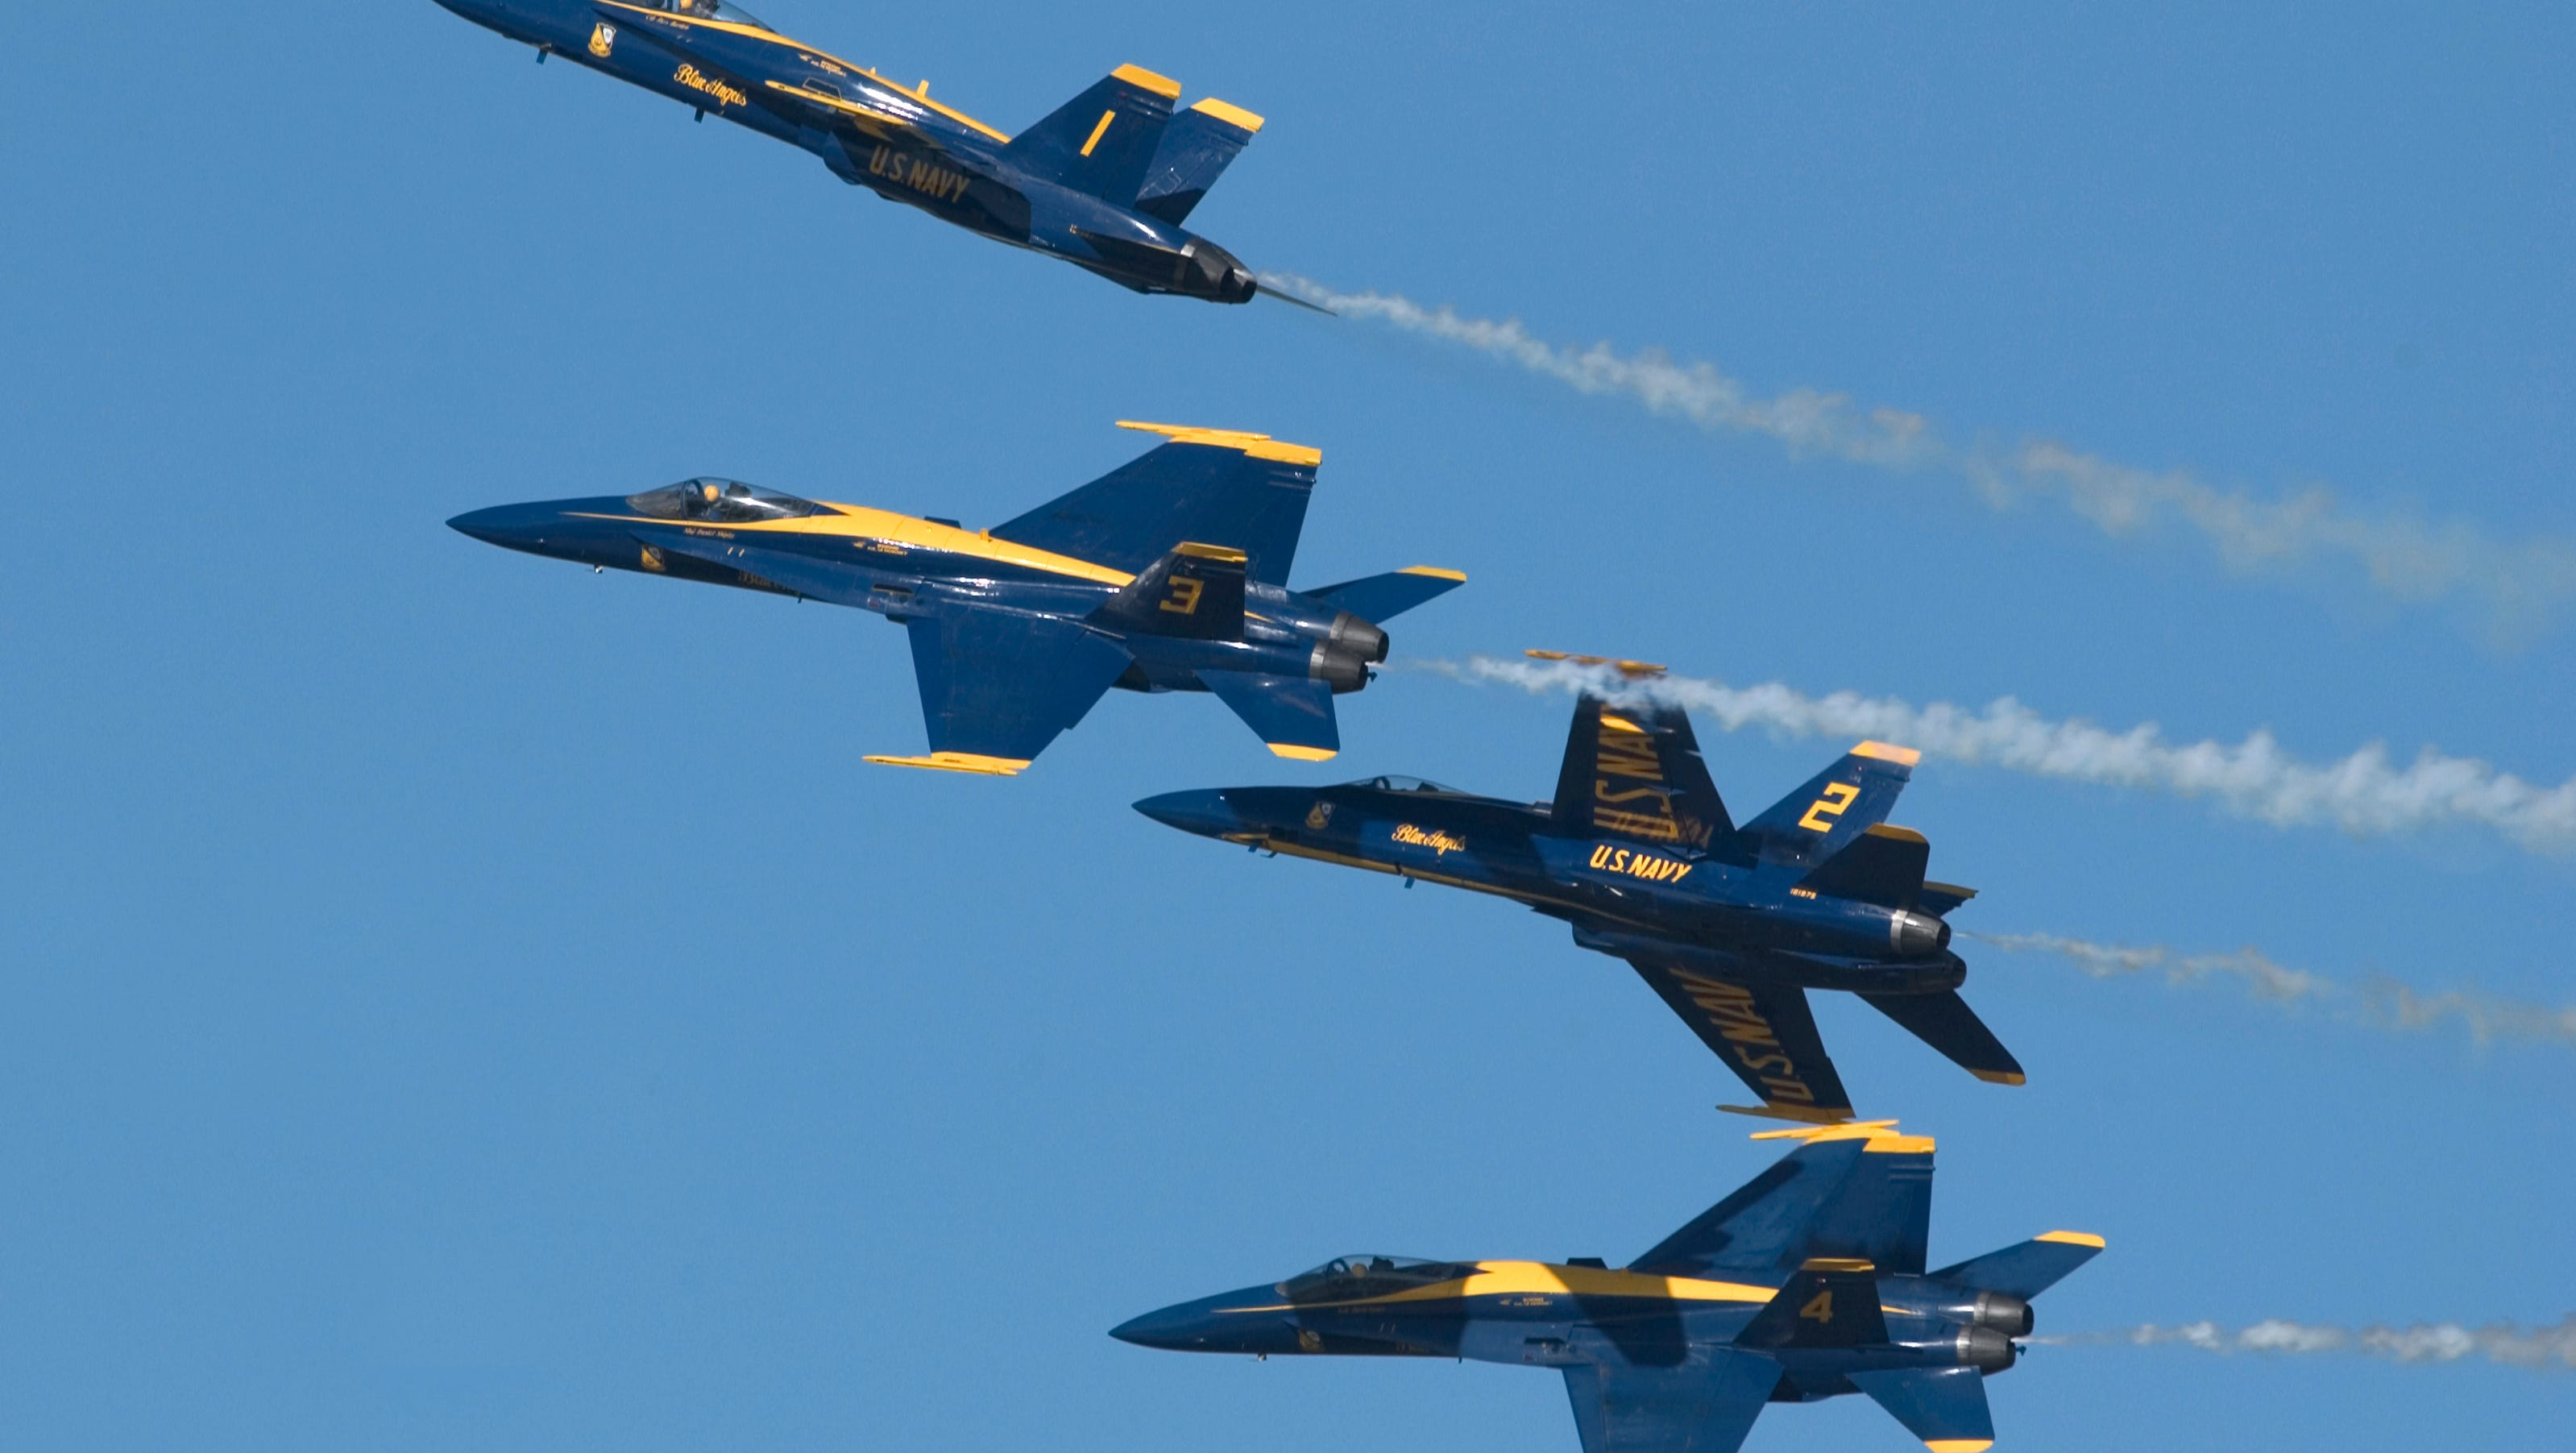 blue angels jets related keywords suggestions blue angels jets